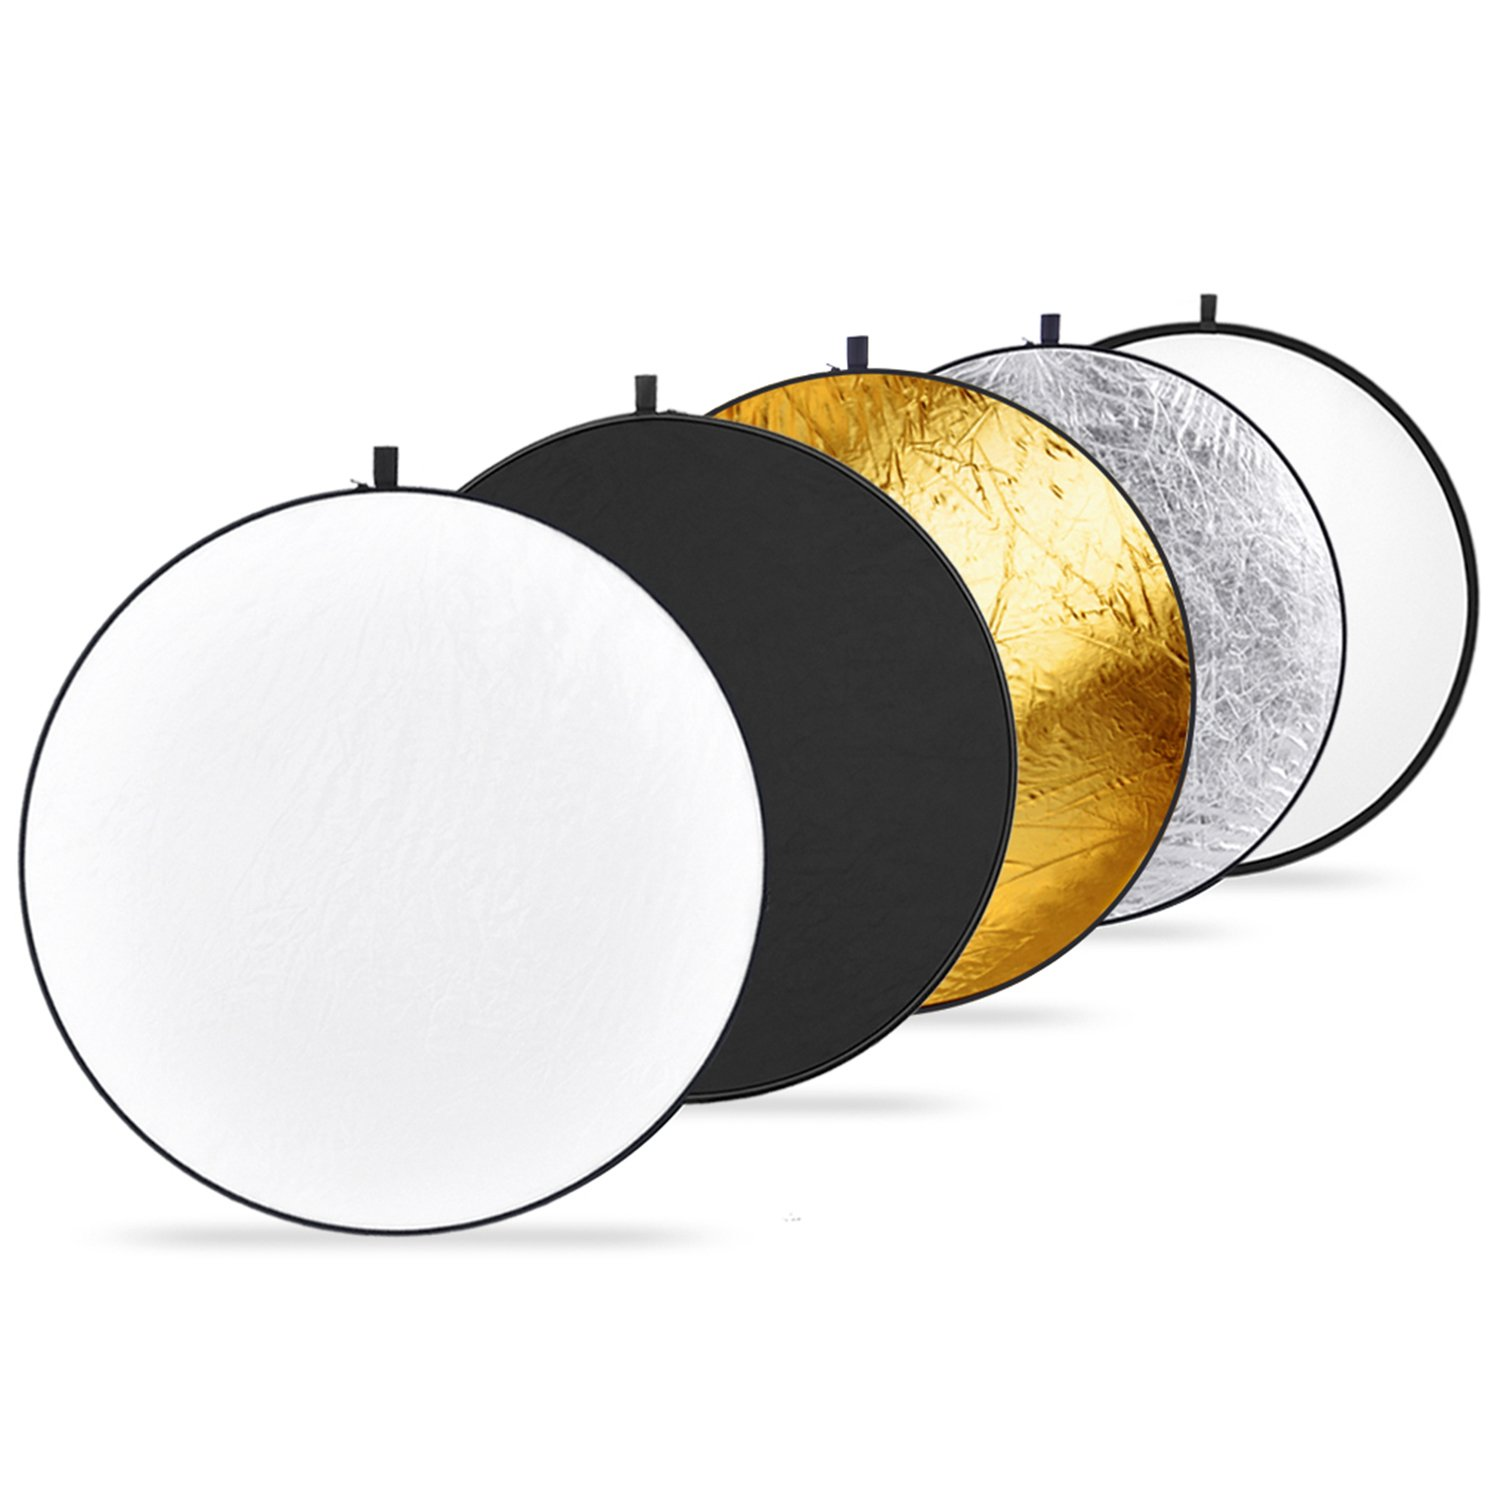 Neewer 11.8 inches/3030 Centimeter Portable 5-in-1 Reflector